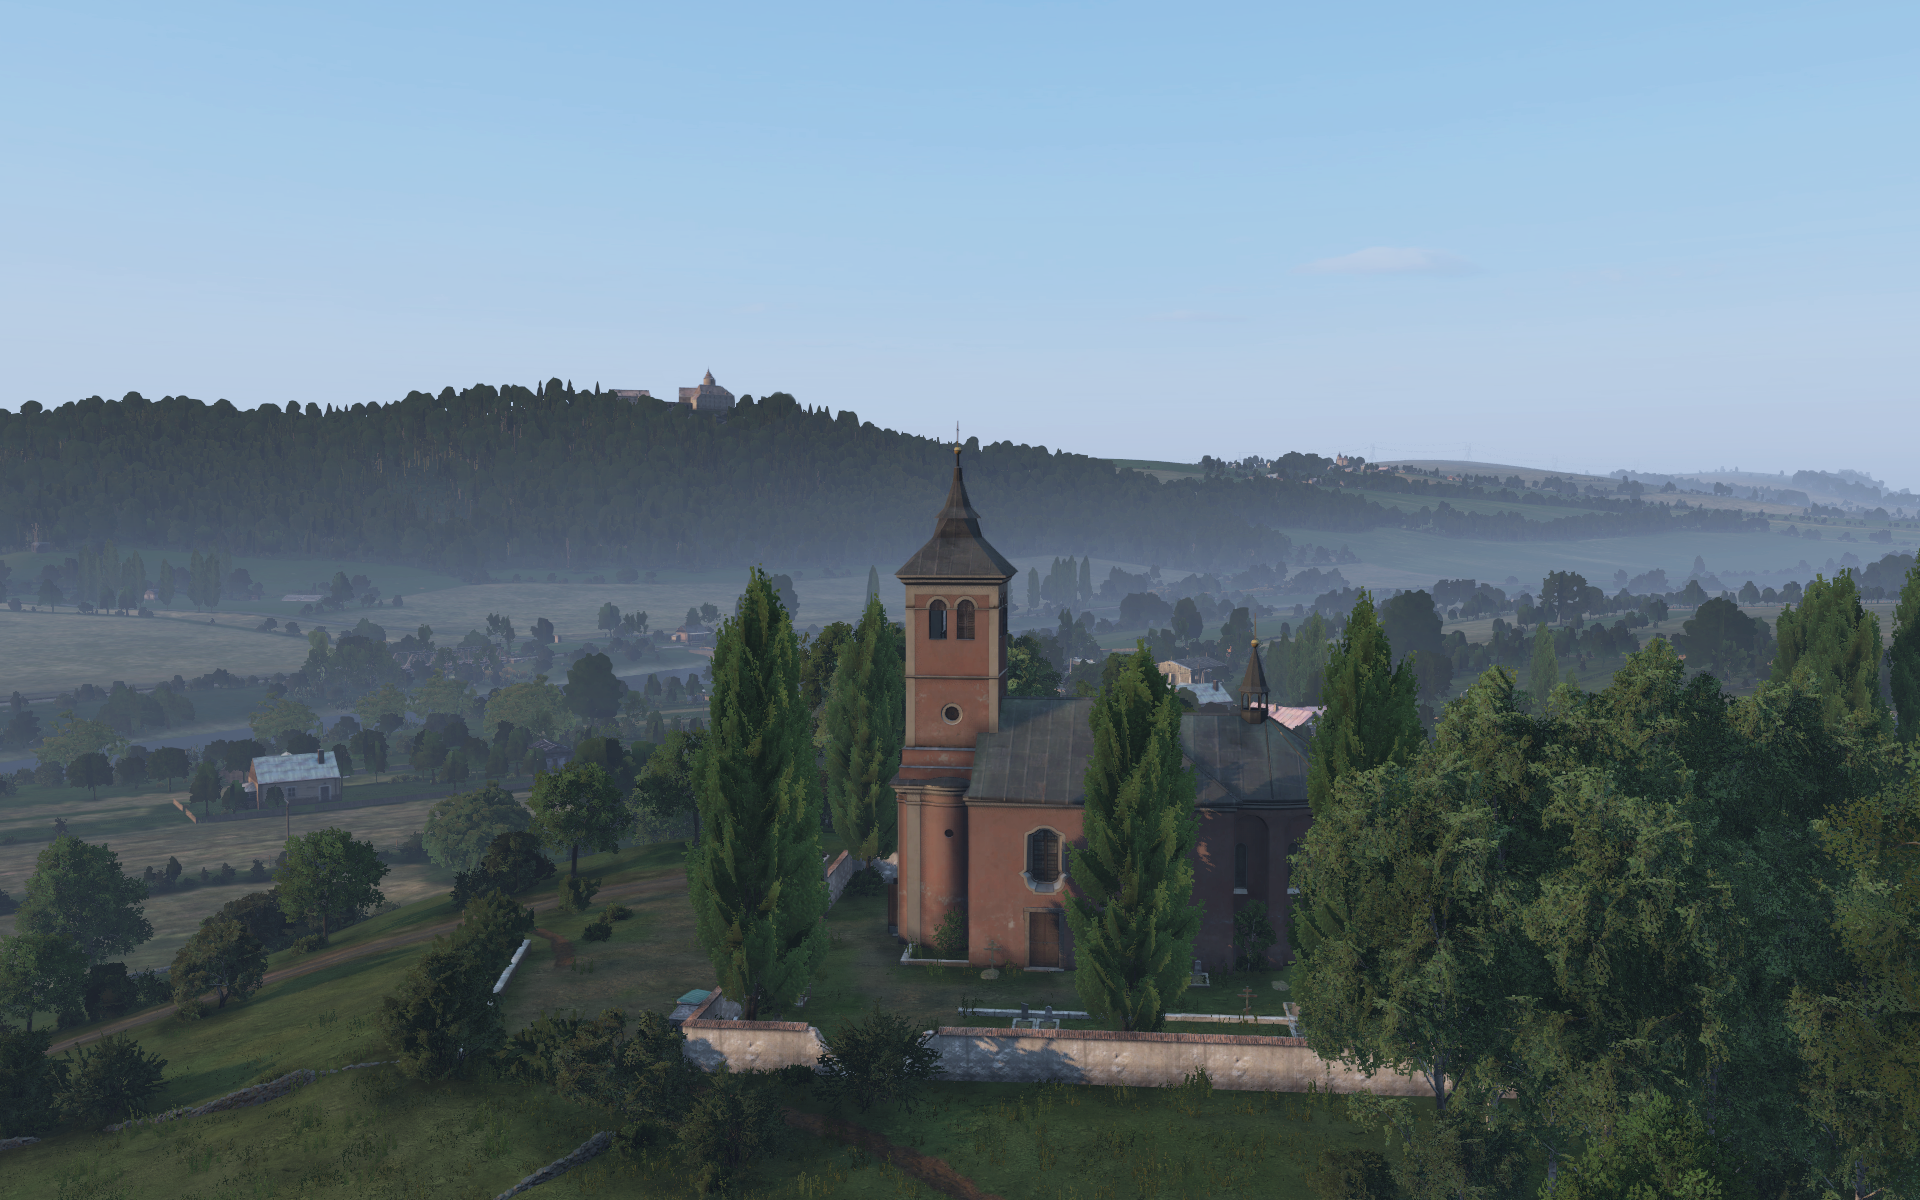 DayZ Gets its Second Official Map Soon – PlayStation.Blog Dayz Map Size on skyrim map size, driveclub map size, wasteland 2 map size, need for speed rivals map size, gta 5 map size, far cry 4 map size, tomb raider map size, fallout map size, l.a. noire map size, bloodborne map size, star citizen map size, starcraft 2 map size, don't starve map size, assassin's creed unity map size, goat simulator map size, open world map size, sunset overdrive map size, far cry 2 map size, infamous second son map size,